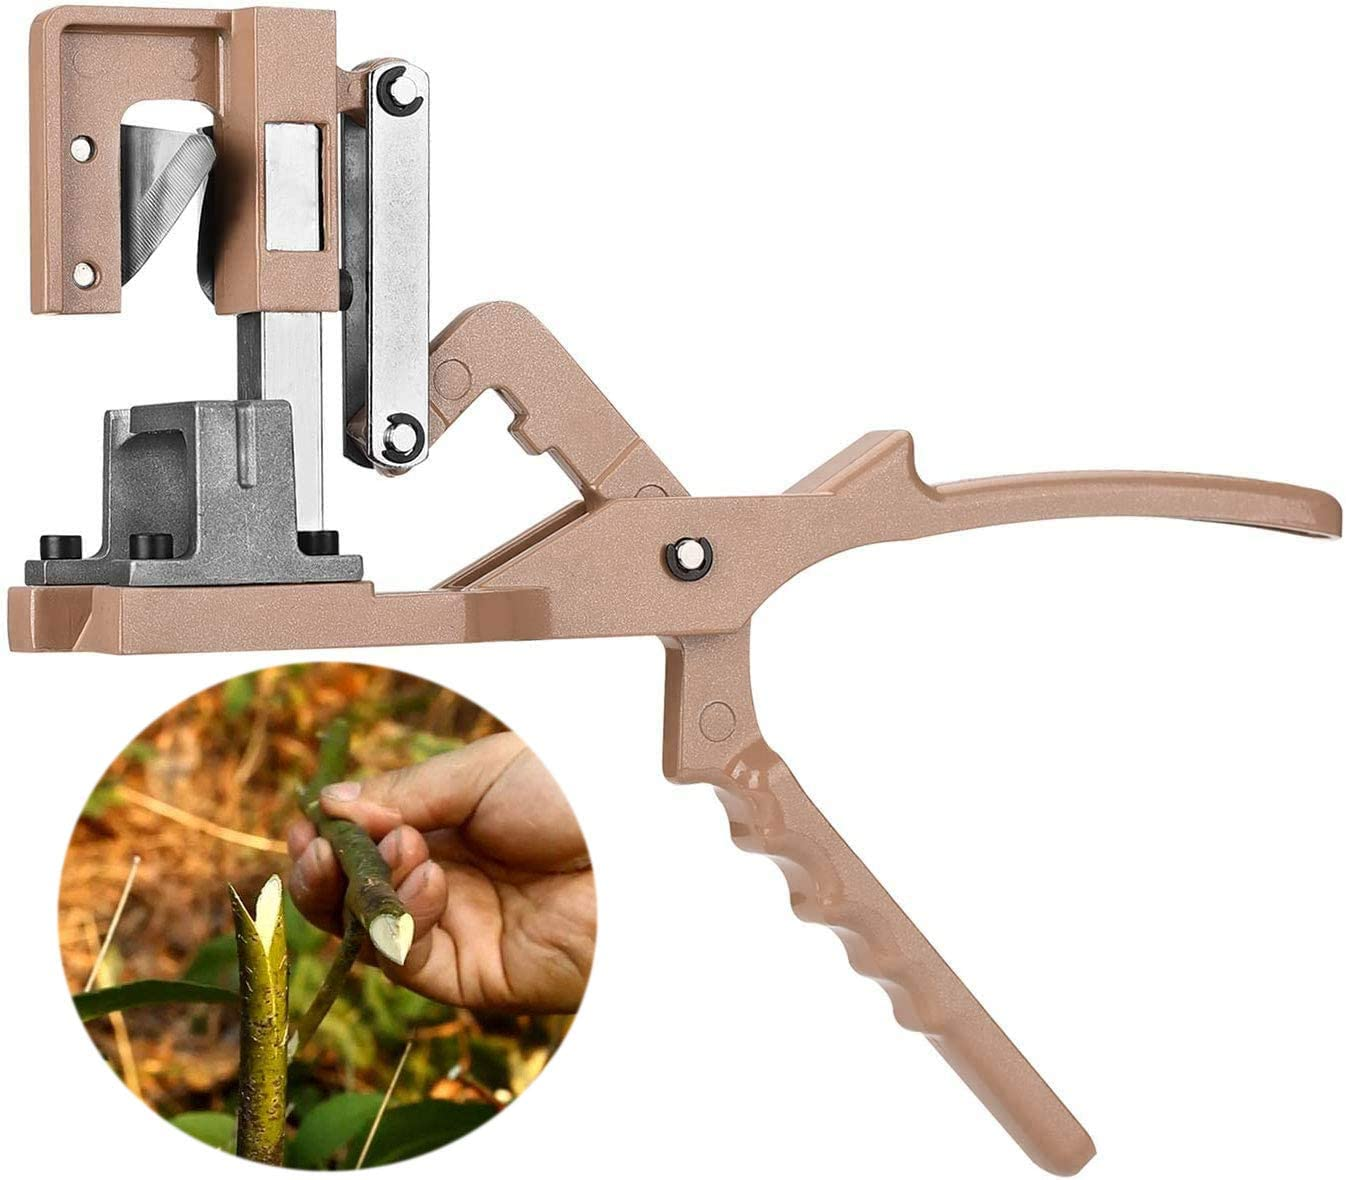 Zmucen Grafting Tool Garden Fruit Trees and Vines Rootstock and Scion Save 50% of Labor Cost 90%+ Success Rates Cut 5-20mm Dia Professional Large Full Metal Body Blade Sharp